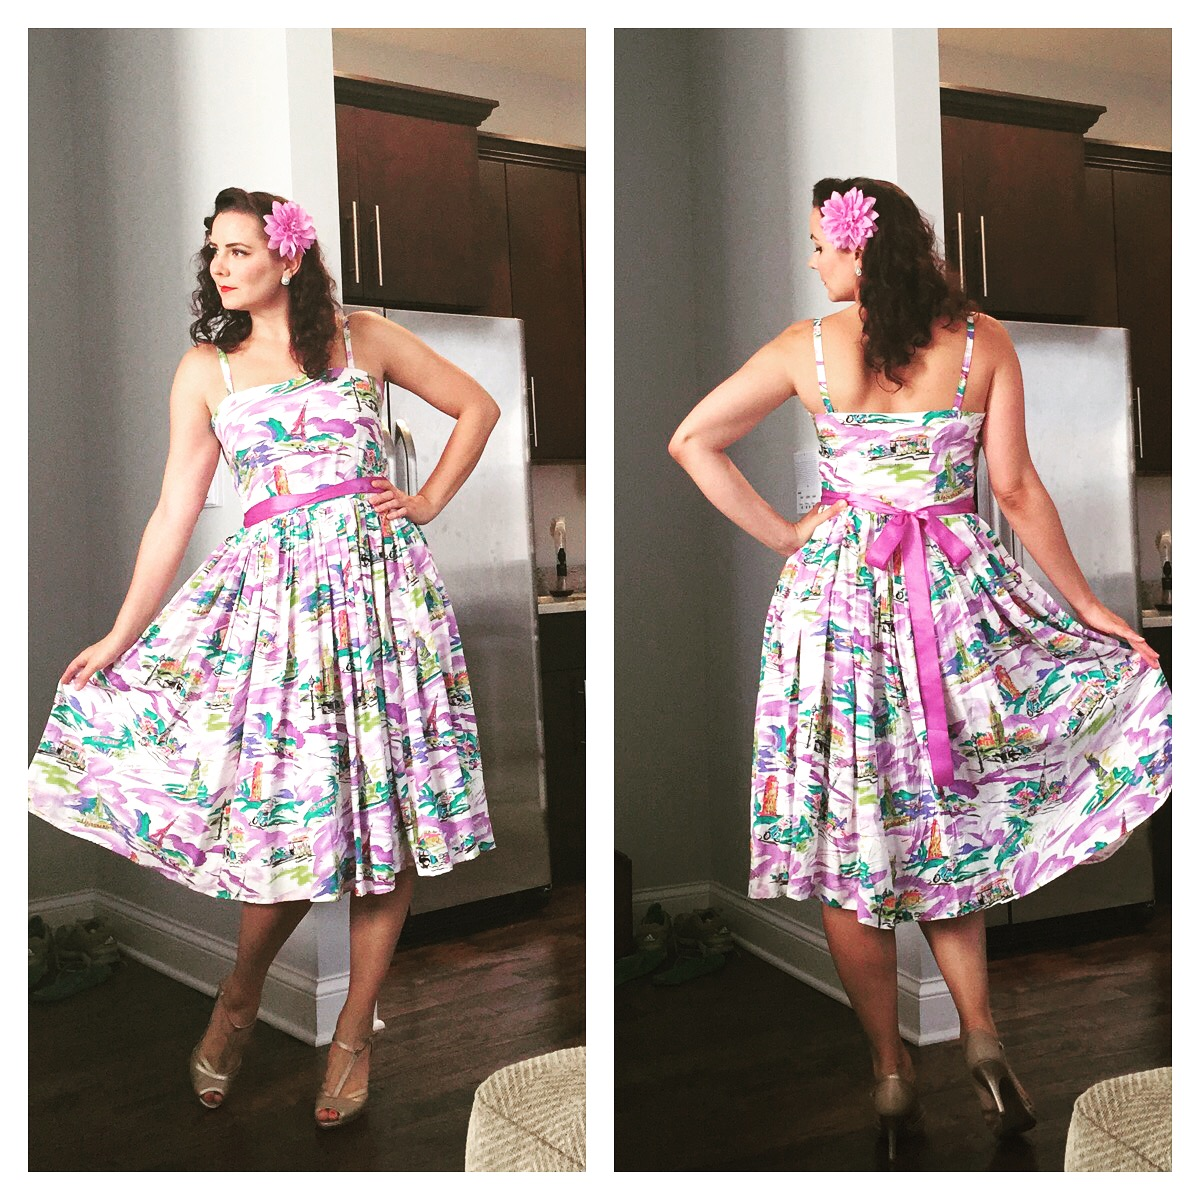 dress: handmade, shoes:  DSW , hair flower:  Nicocco Creations